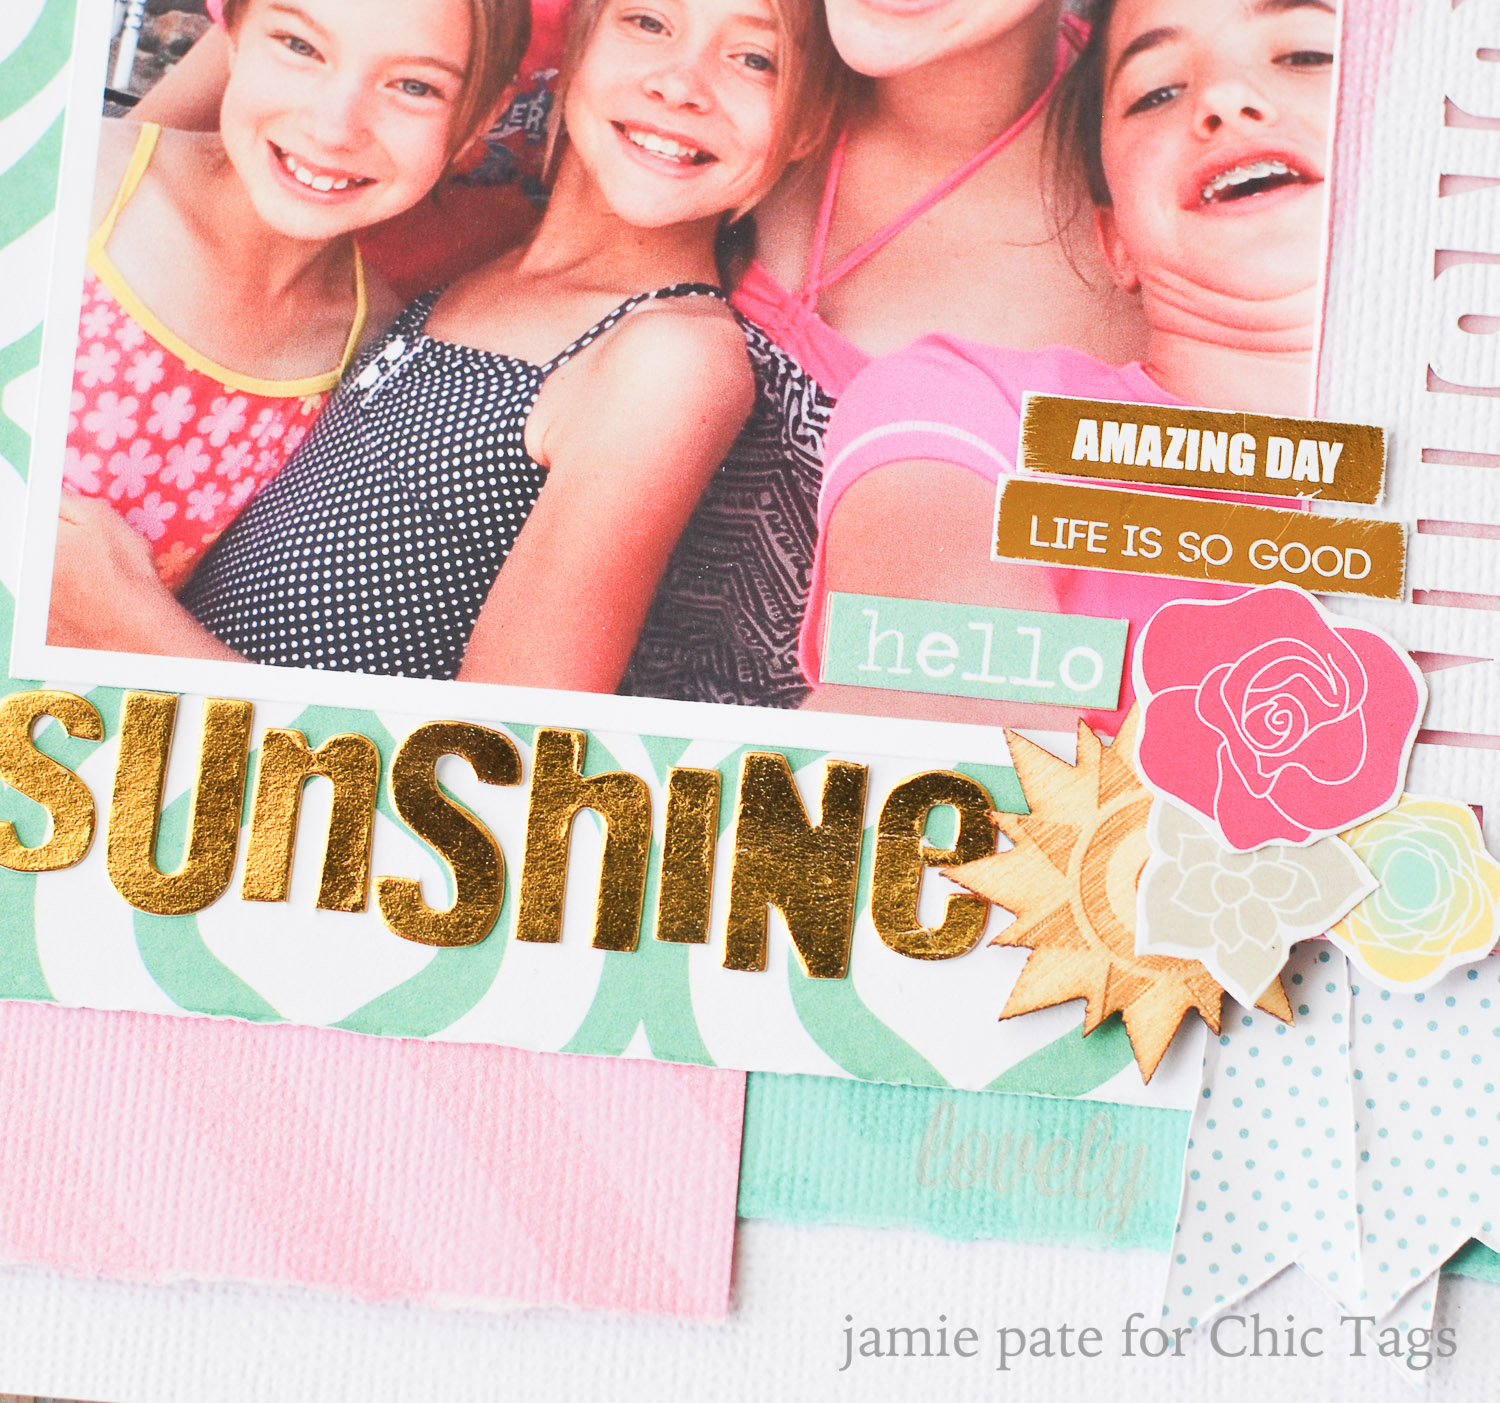 Chic Tags Good Day Sunshine layout by jamie pate